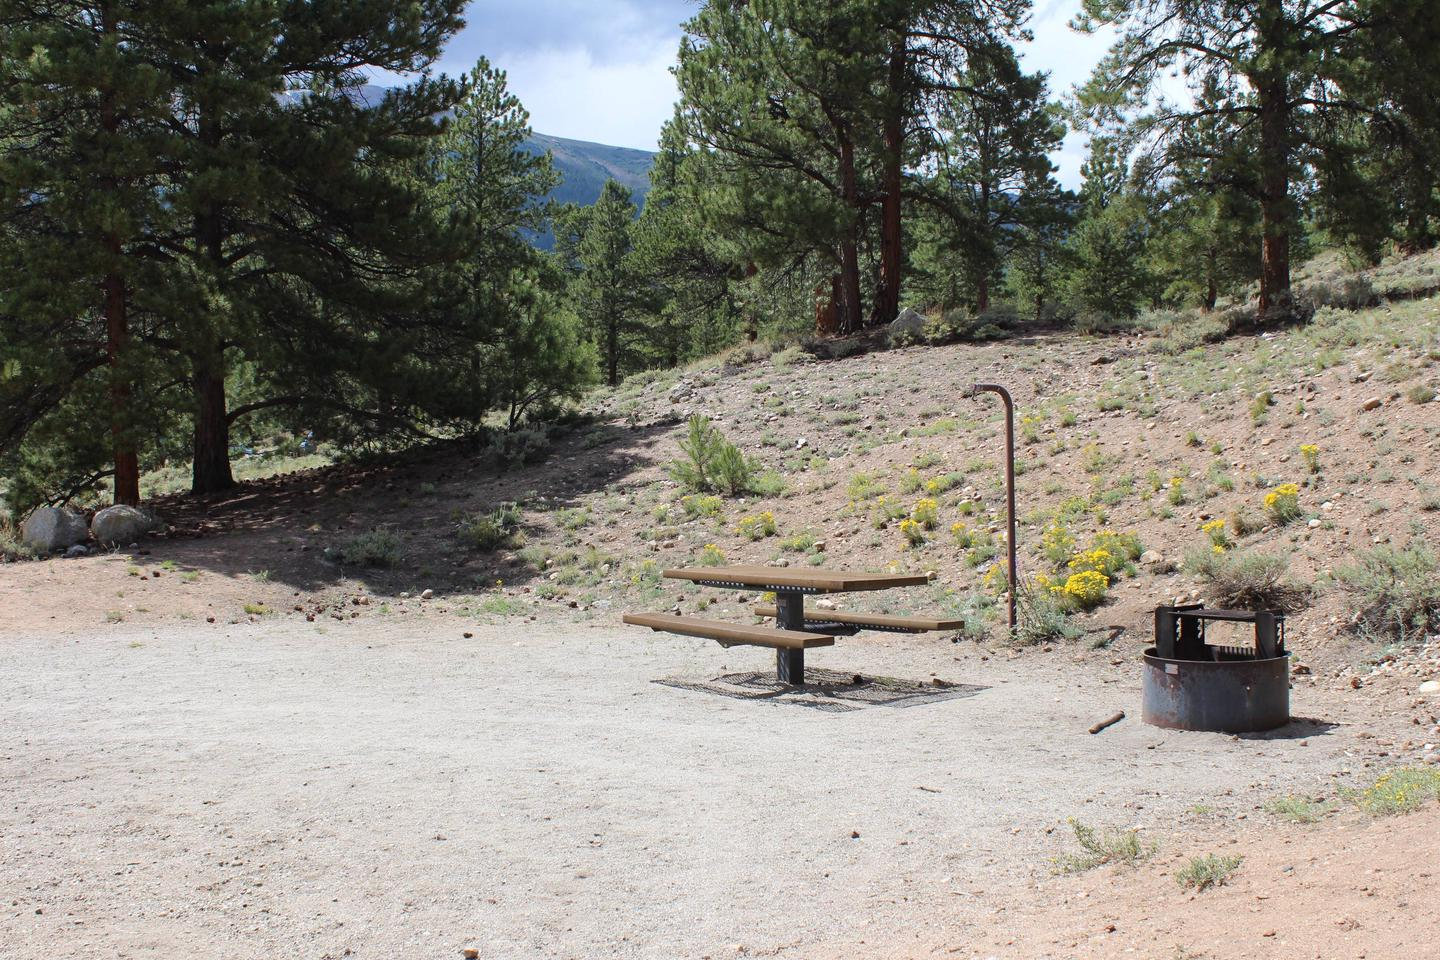 White Star Campground, site 23 picnic table and fire ring